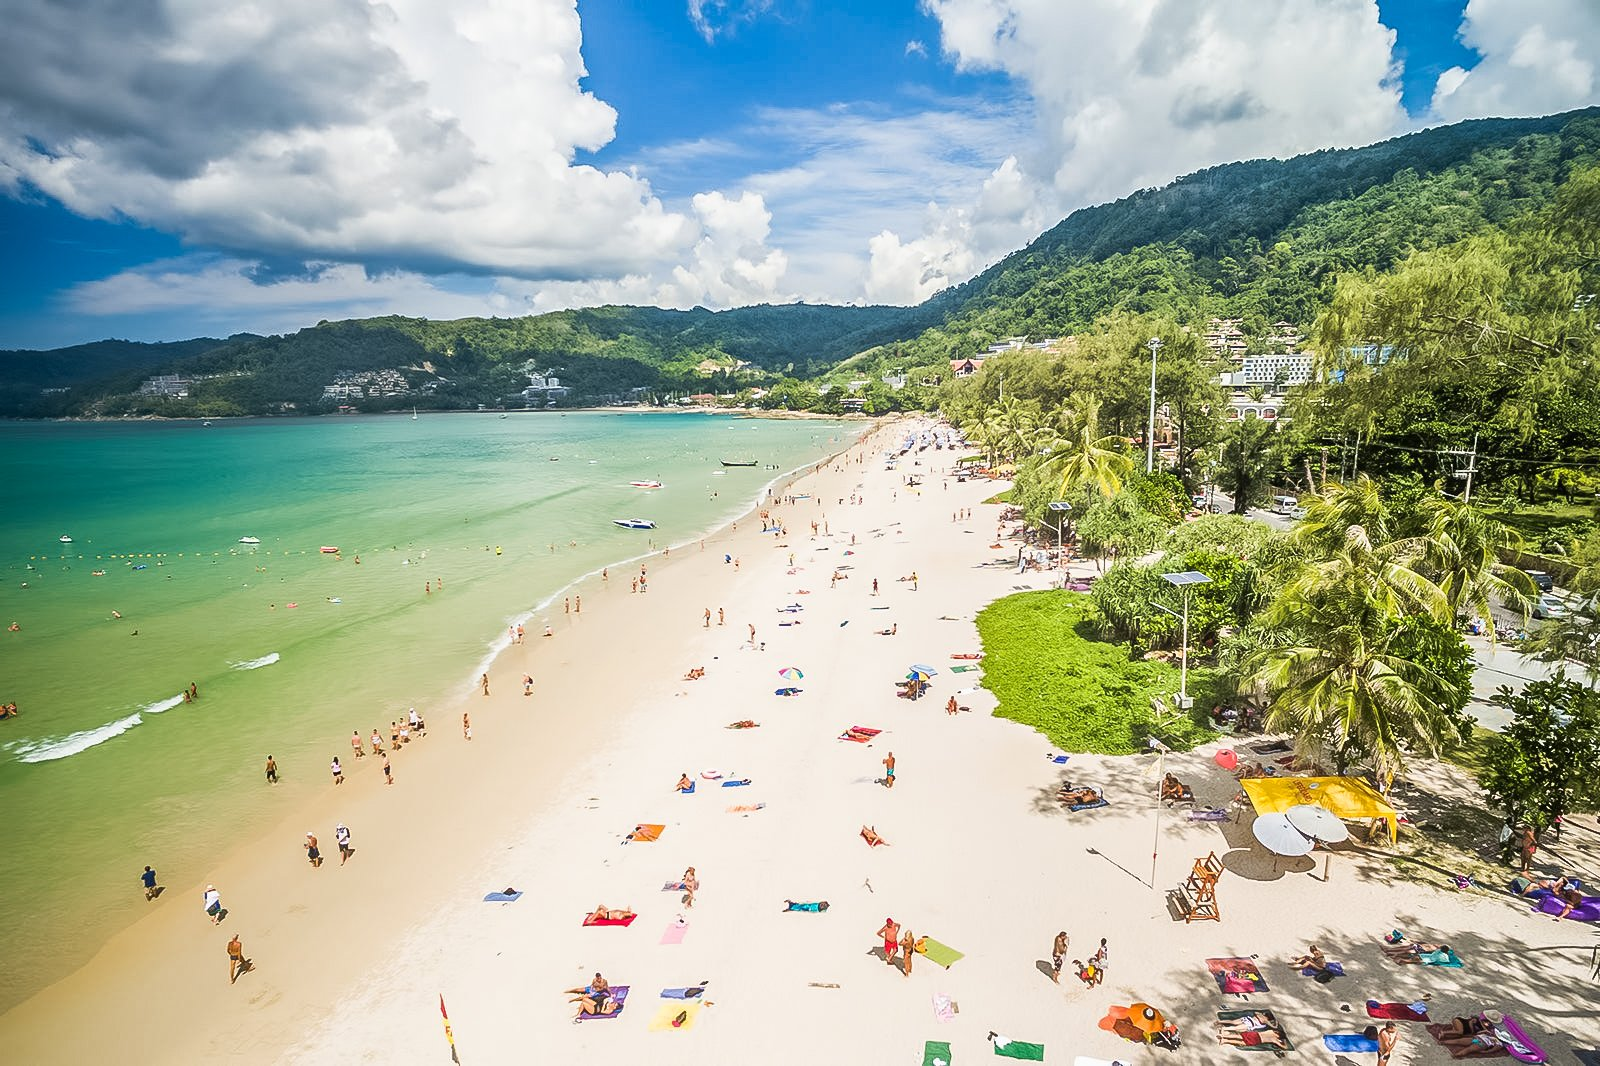 Patong Beach is famous for its golden sandy beach located in Phuket, Thailand.